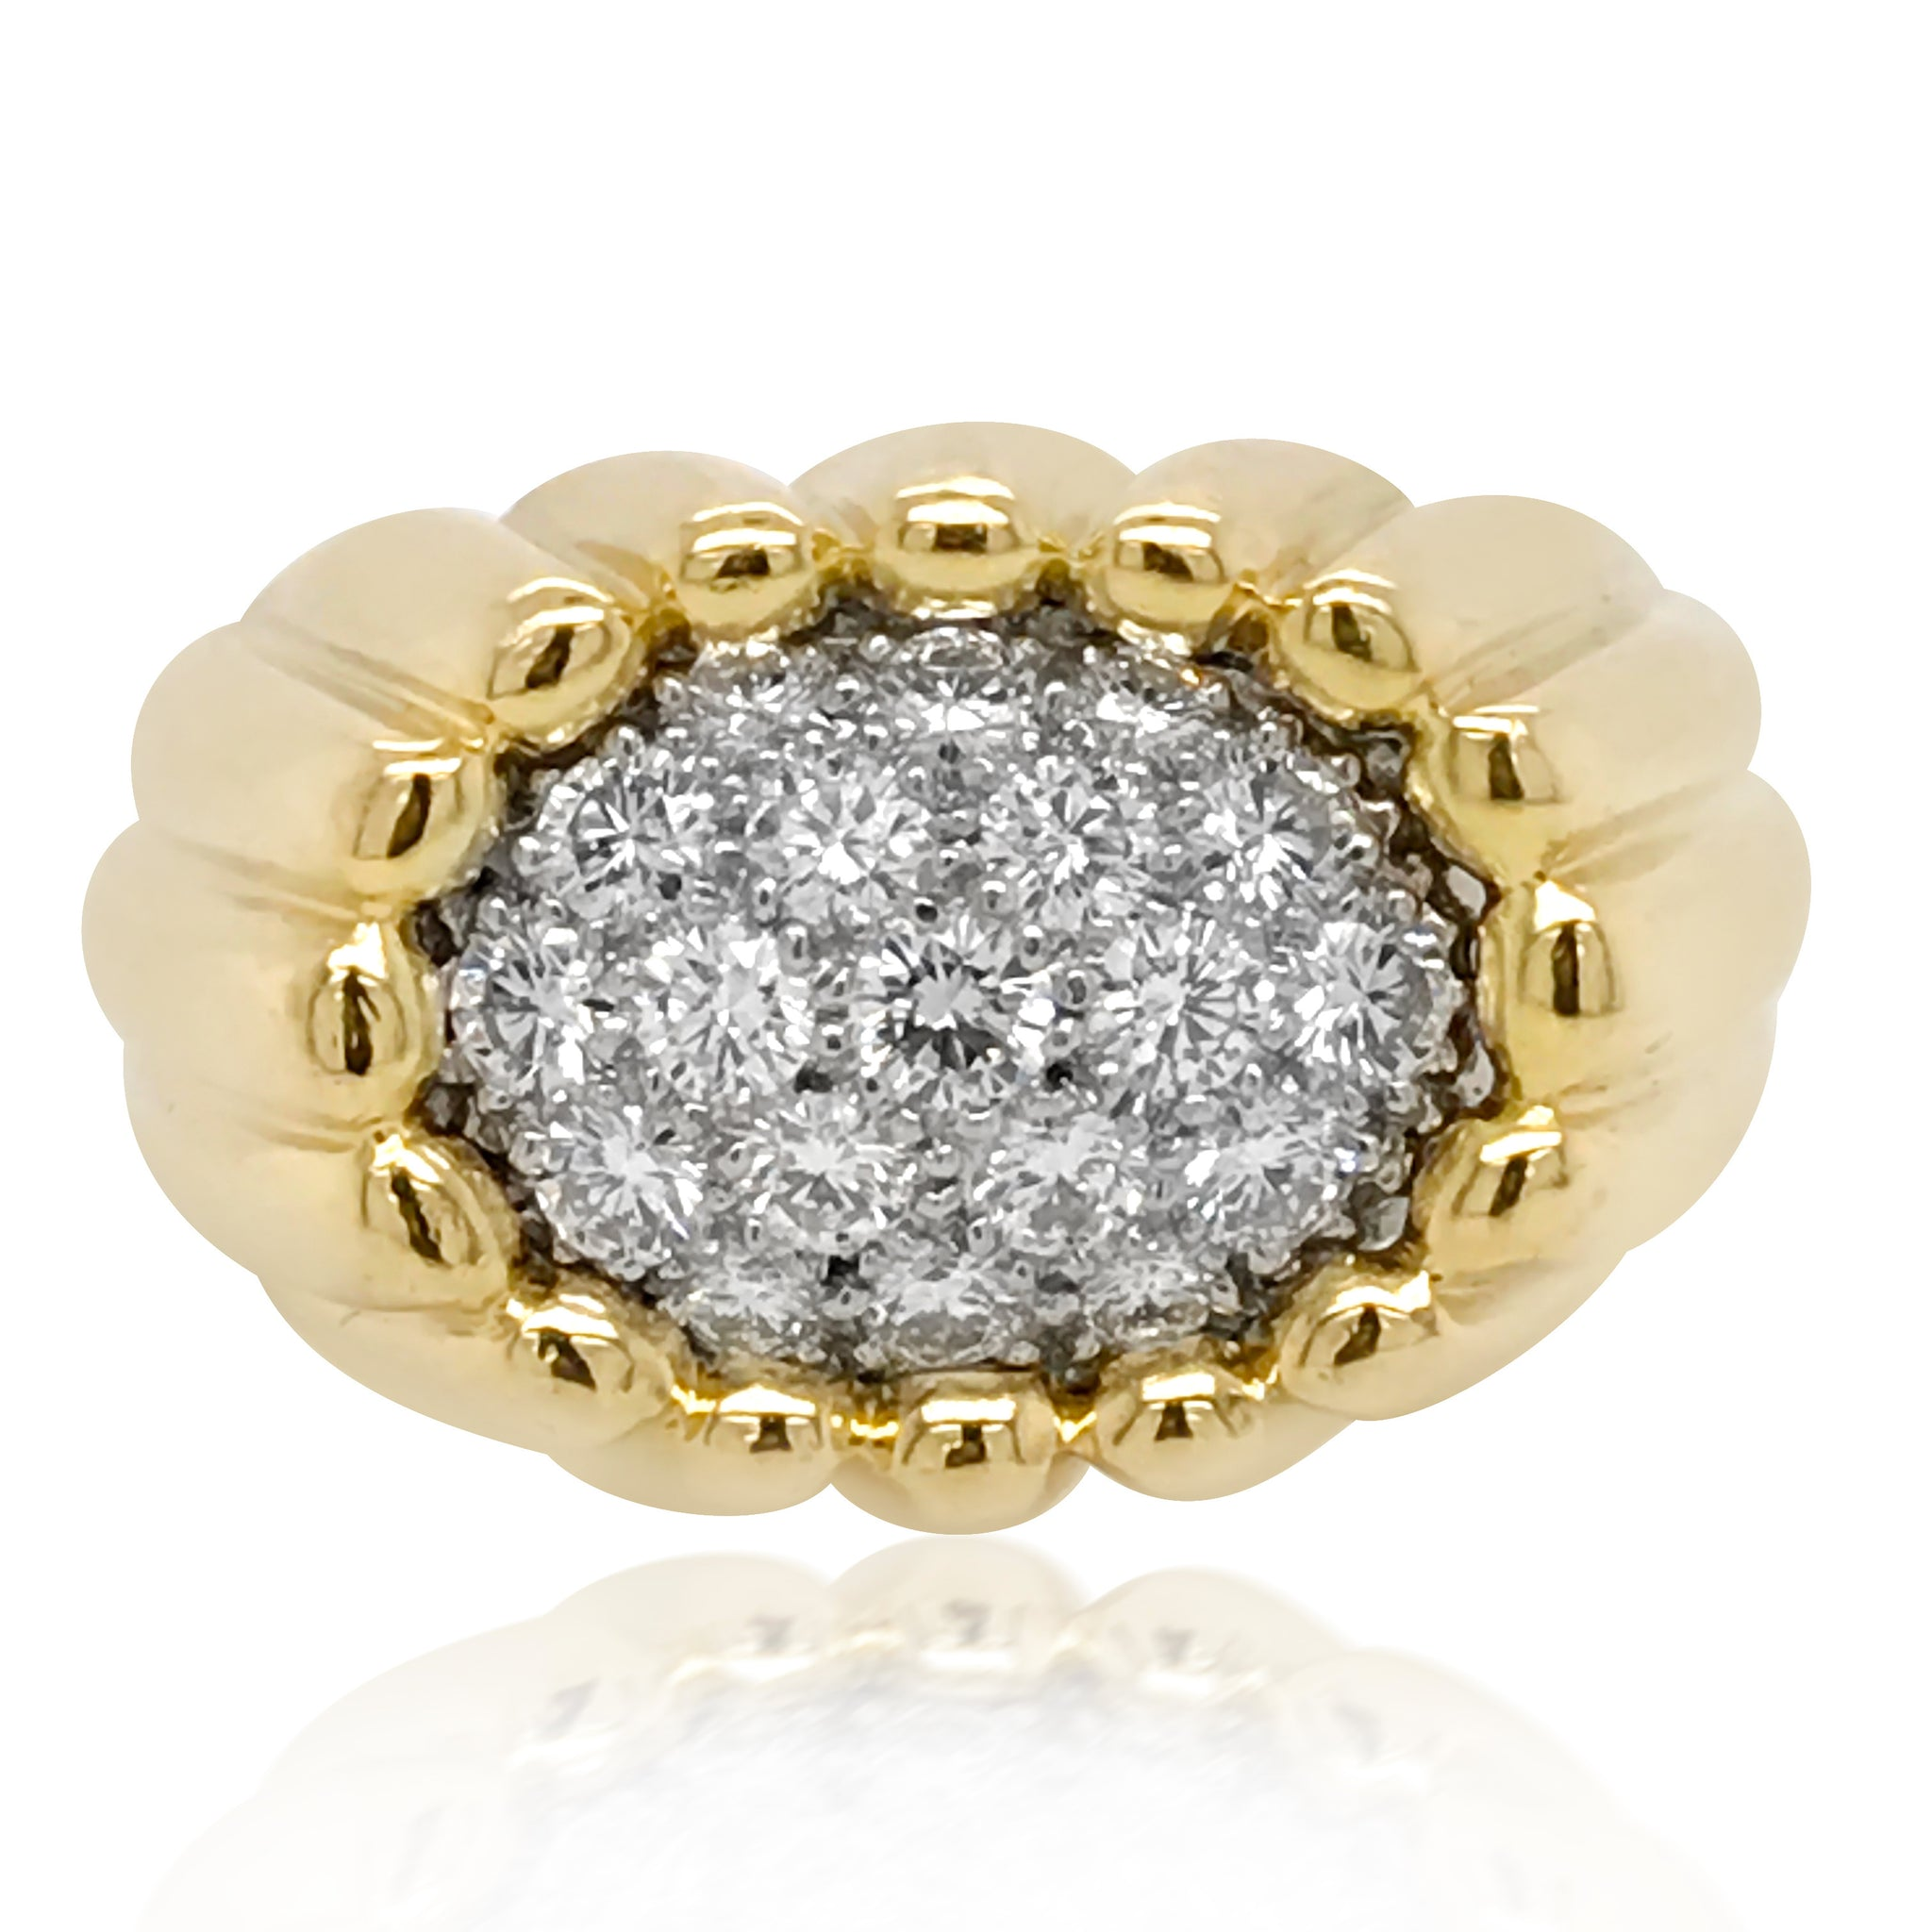 Van Cleef & Arpels, Two-color Gold and Diamond Ring - Lueur Jewelry